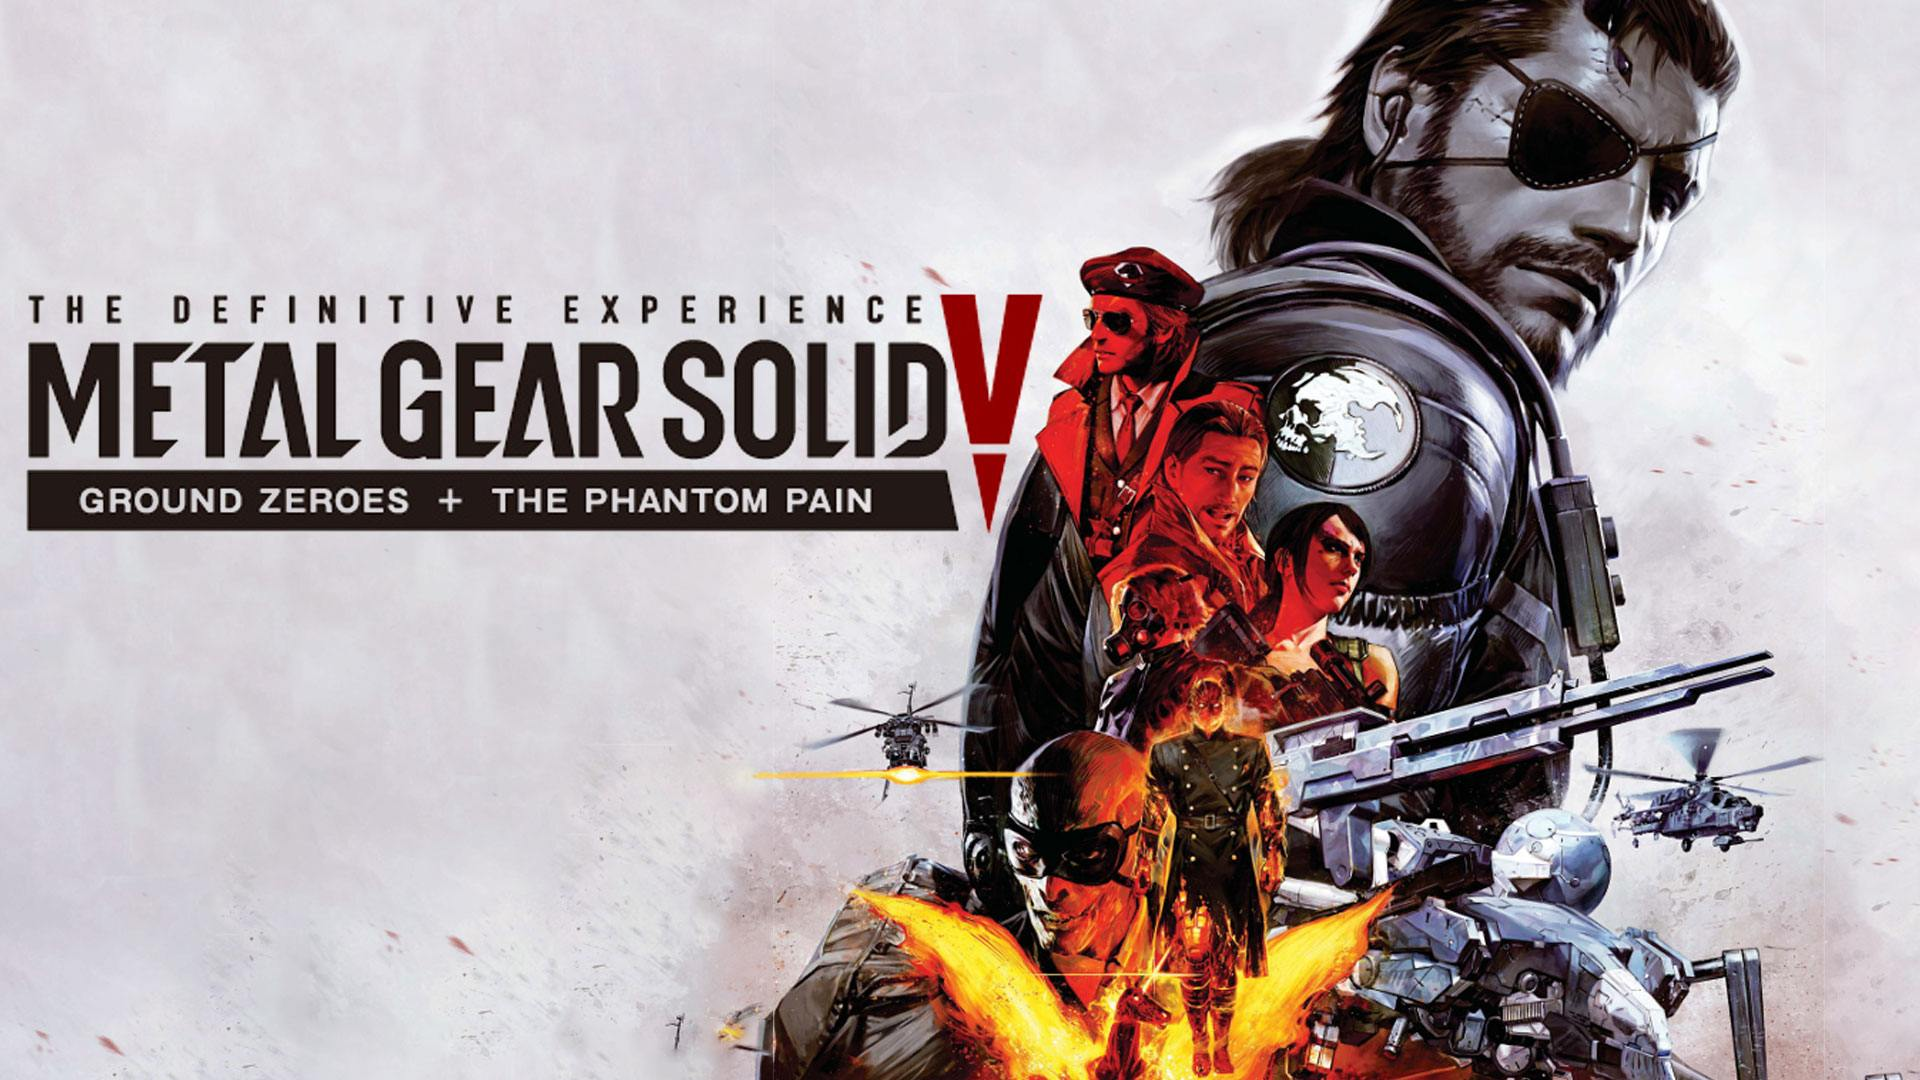 METAL GEAR SOLID V: The Definitive Experience | PC Steam